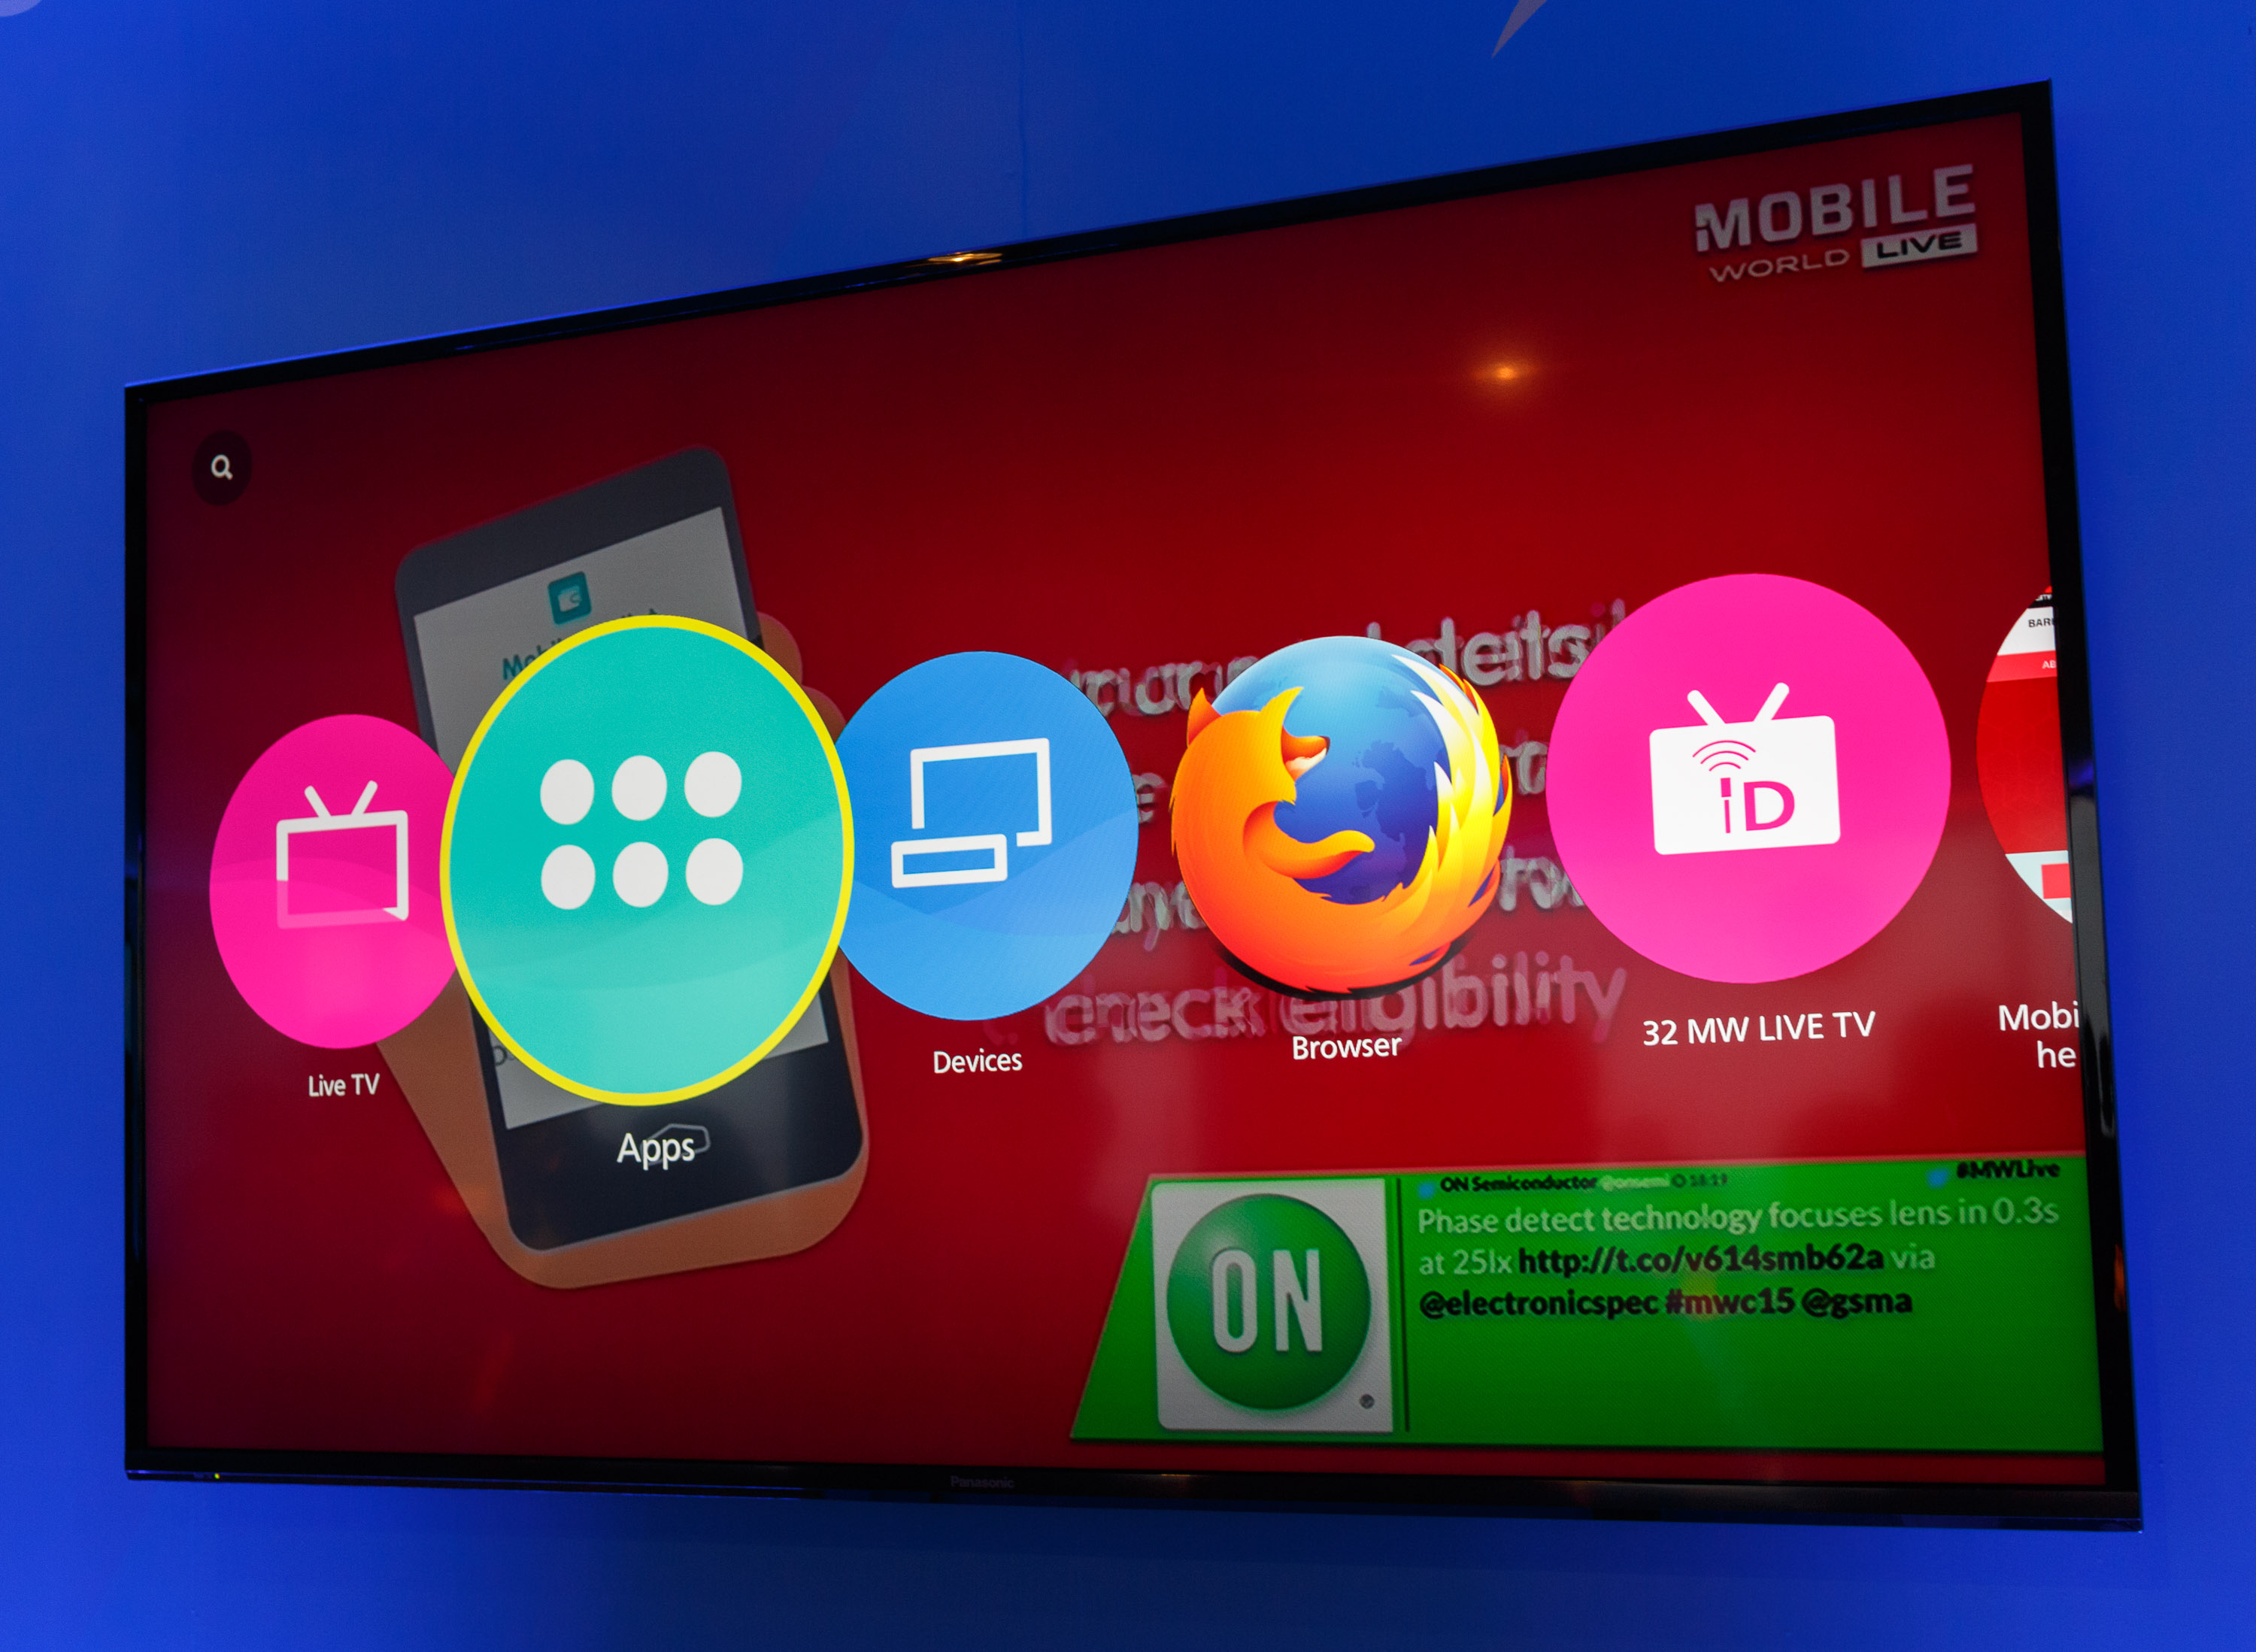 <p>The main screen visible when you turn on Panasonic's 4K TV shows a user-configurable list of icons to launch various stations or services. Panasonic announced the TV at CES in January but showed it at Mobile World Congress two months later.</p>